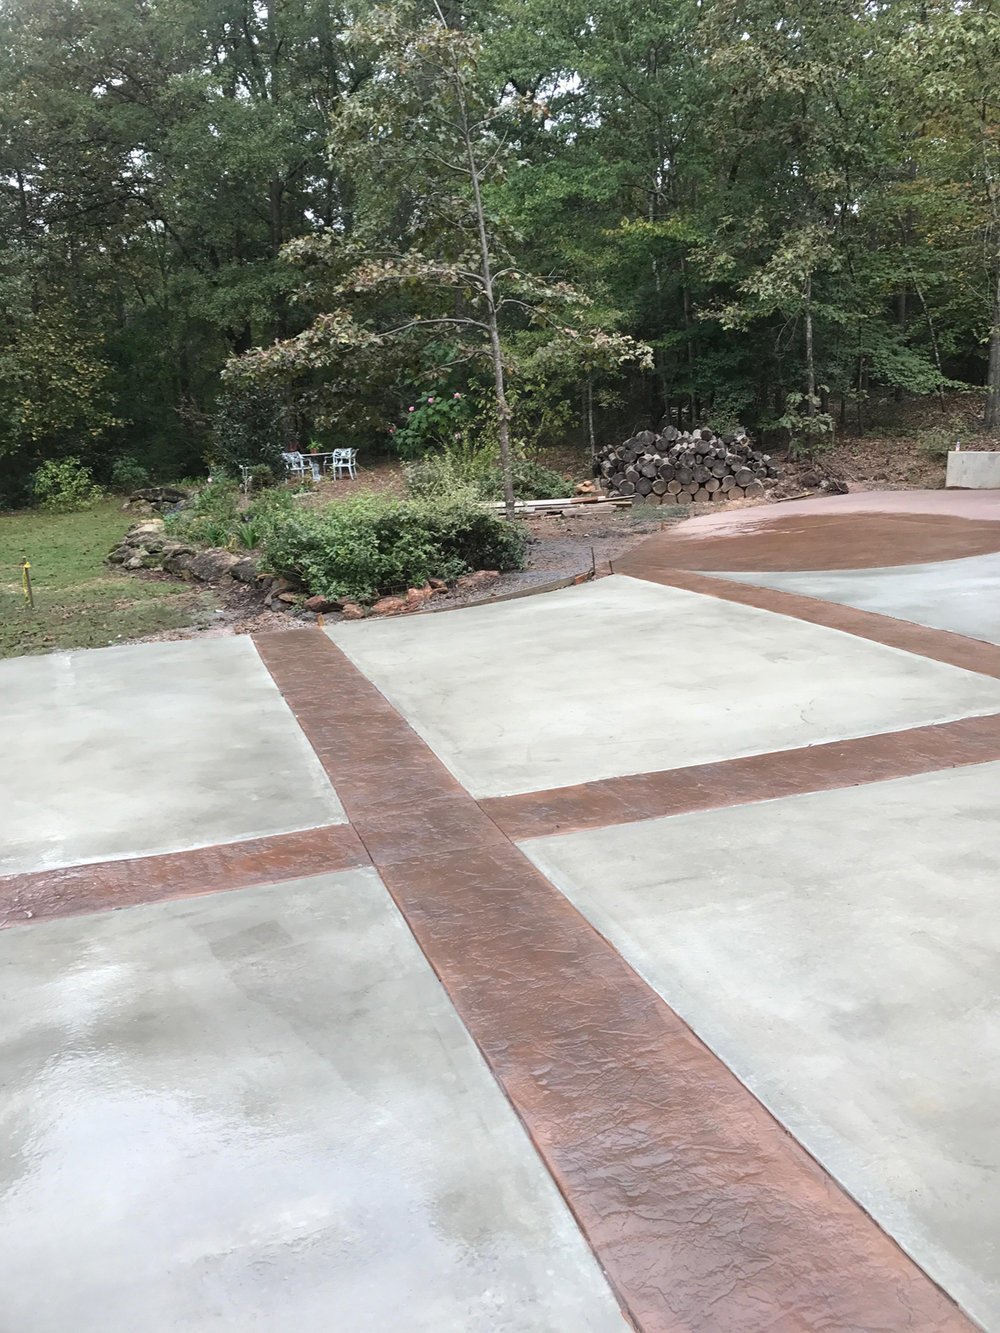 This is a custom driveway that we did using the colors Leather and Ginger. The color we use comes from Live Oak Hardware.